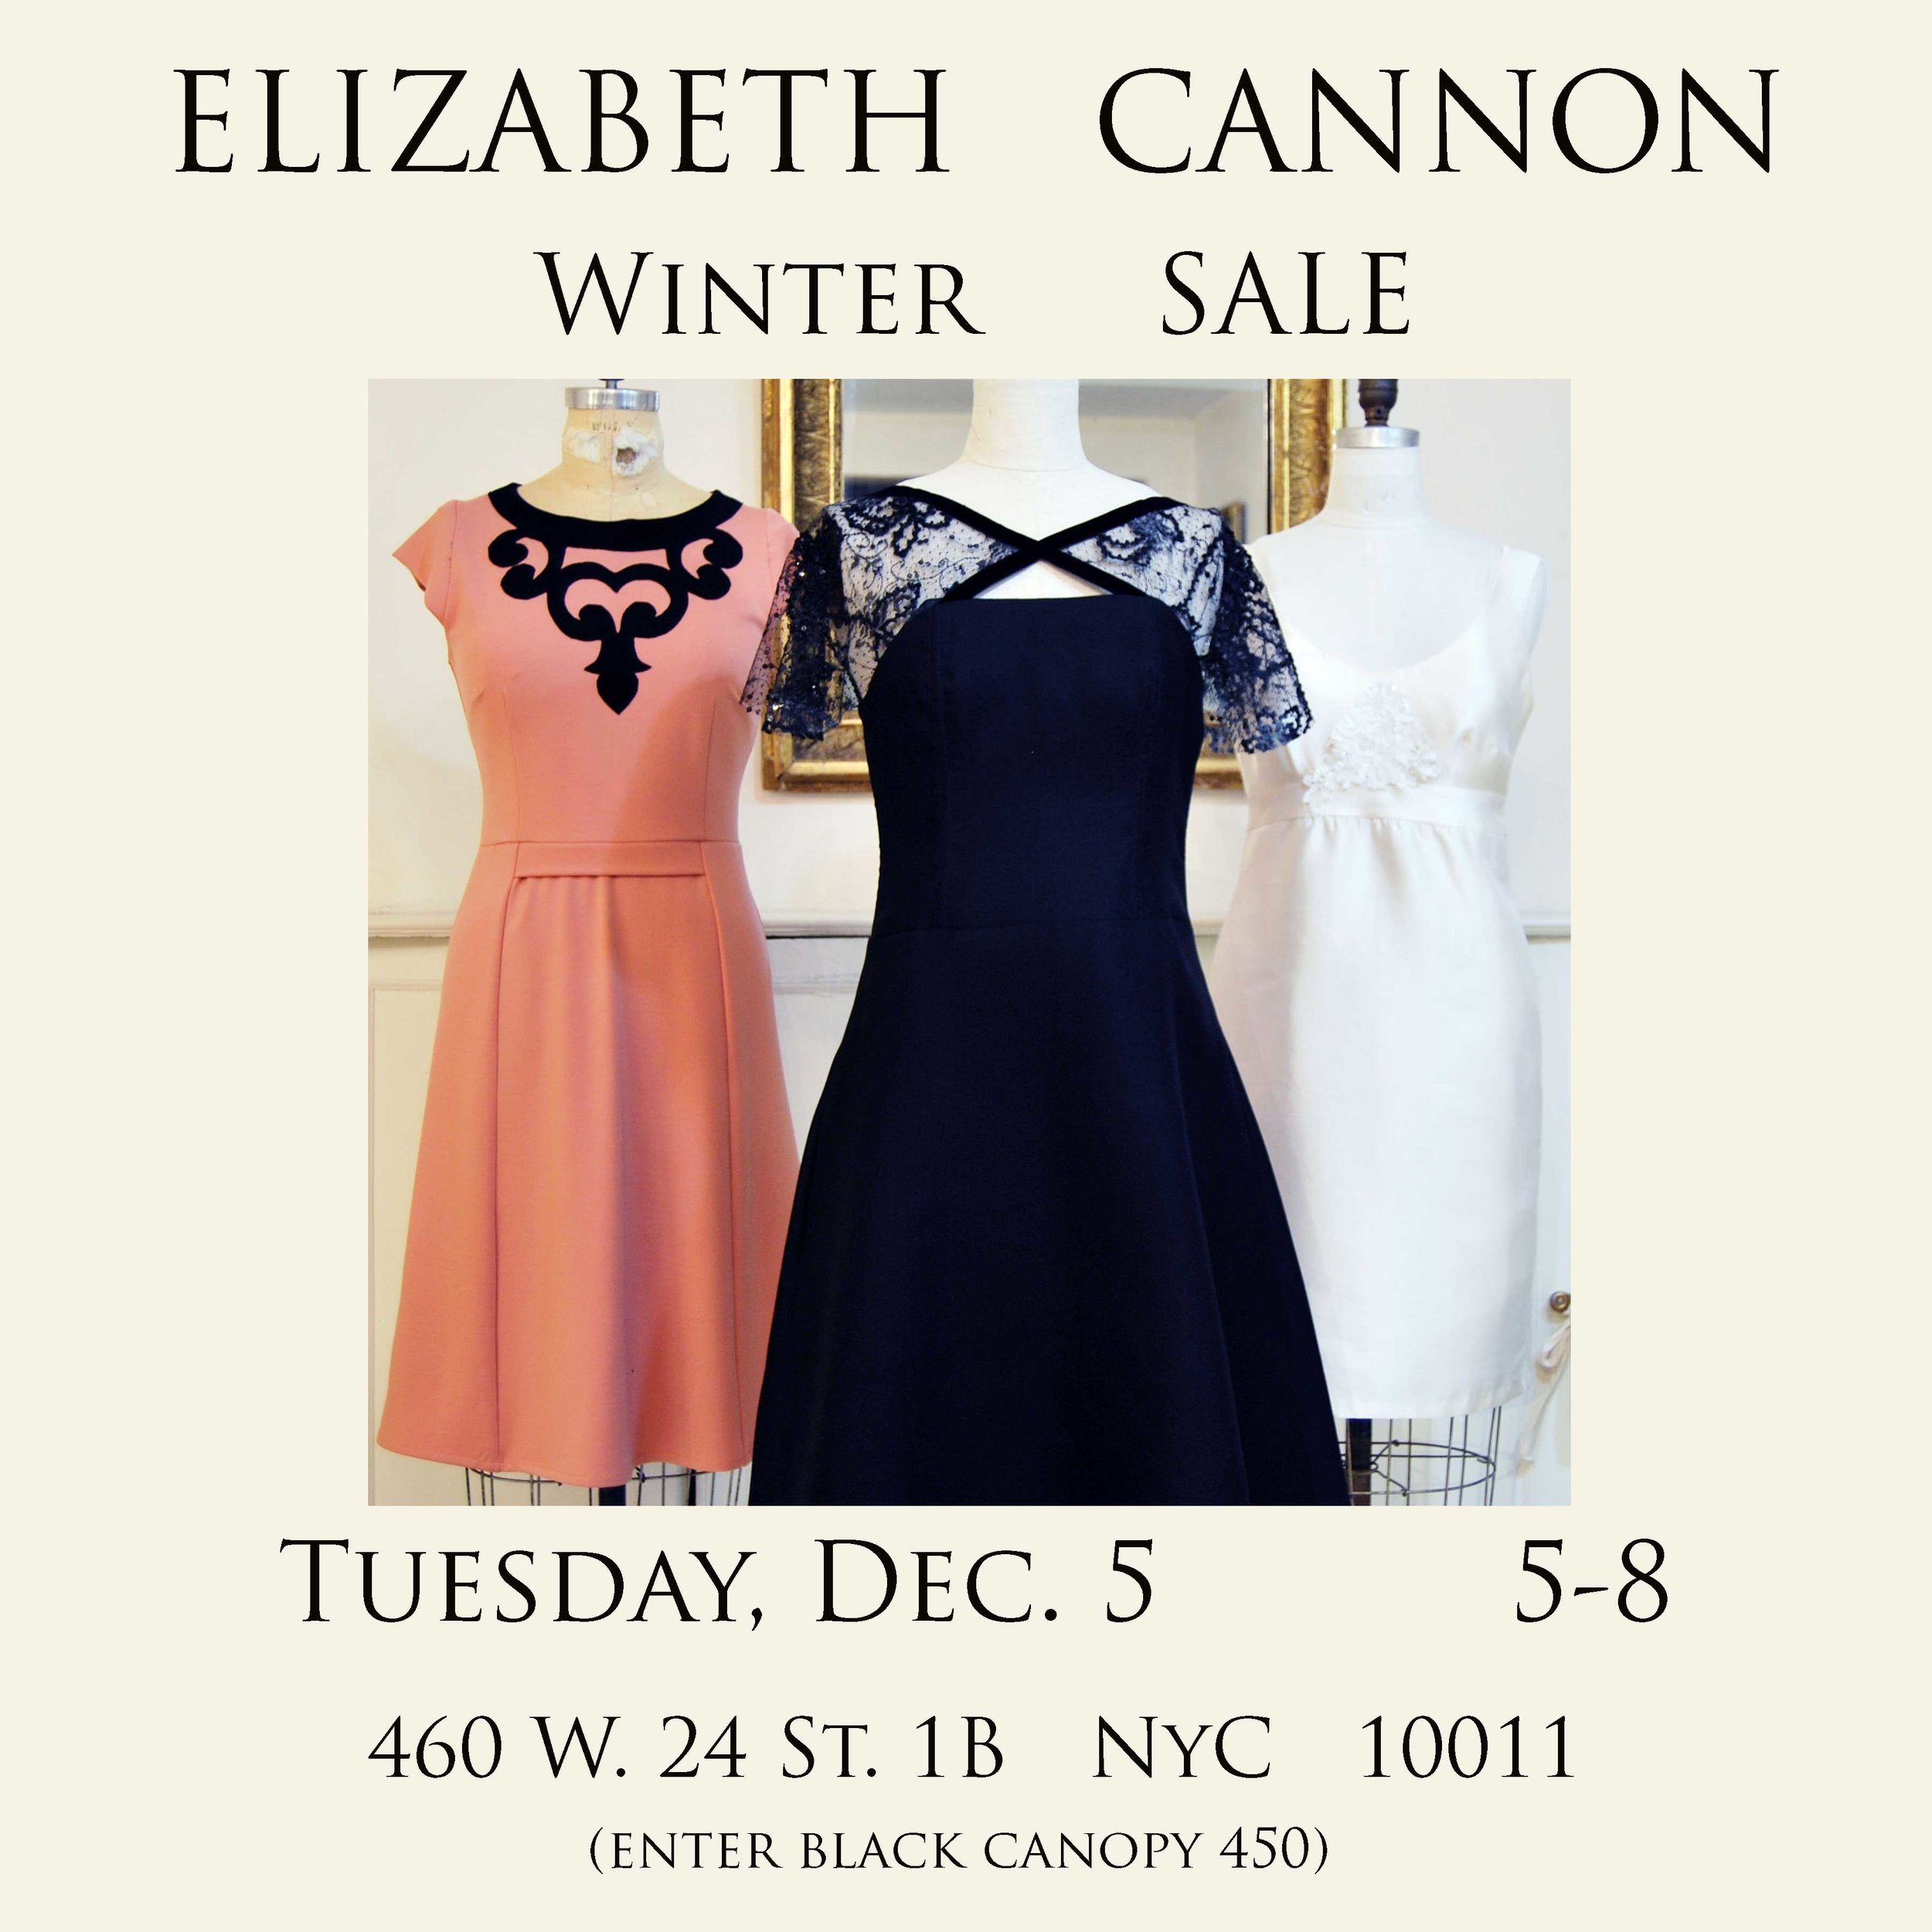 - Sale extended thru Dec. 22 by appt.make appt by contacting me on the contact page